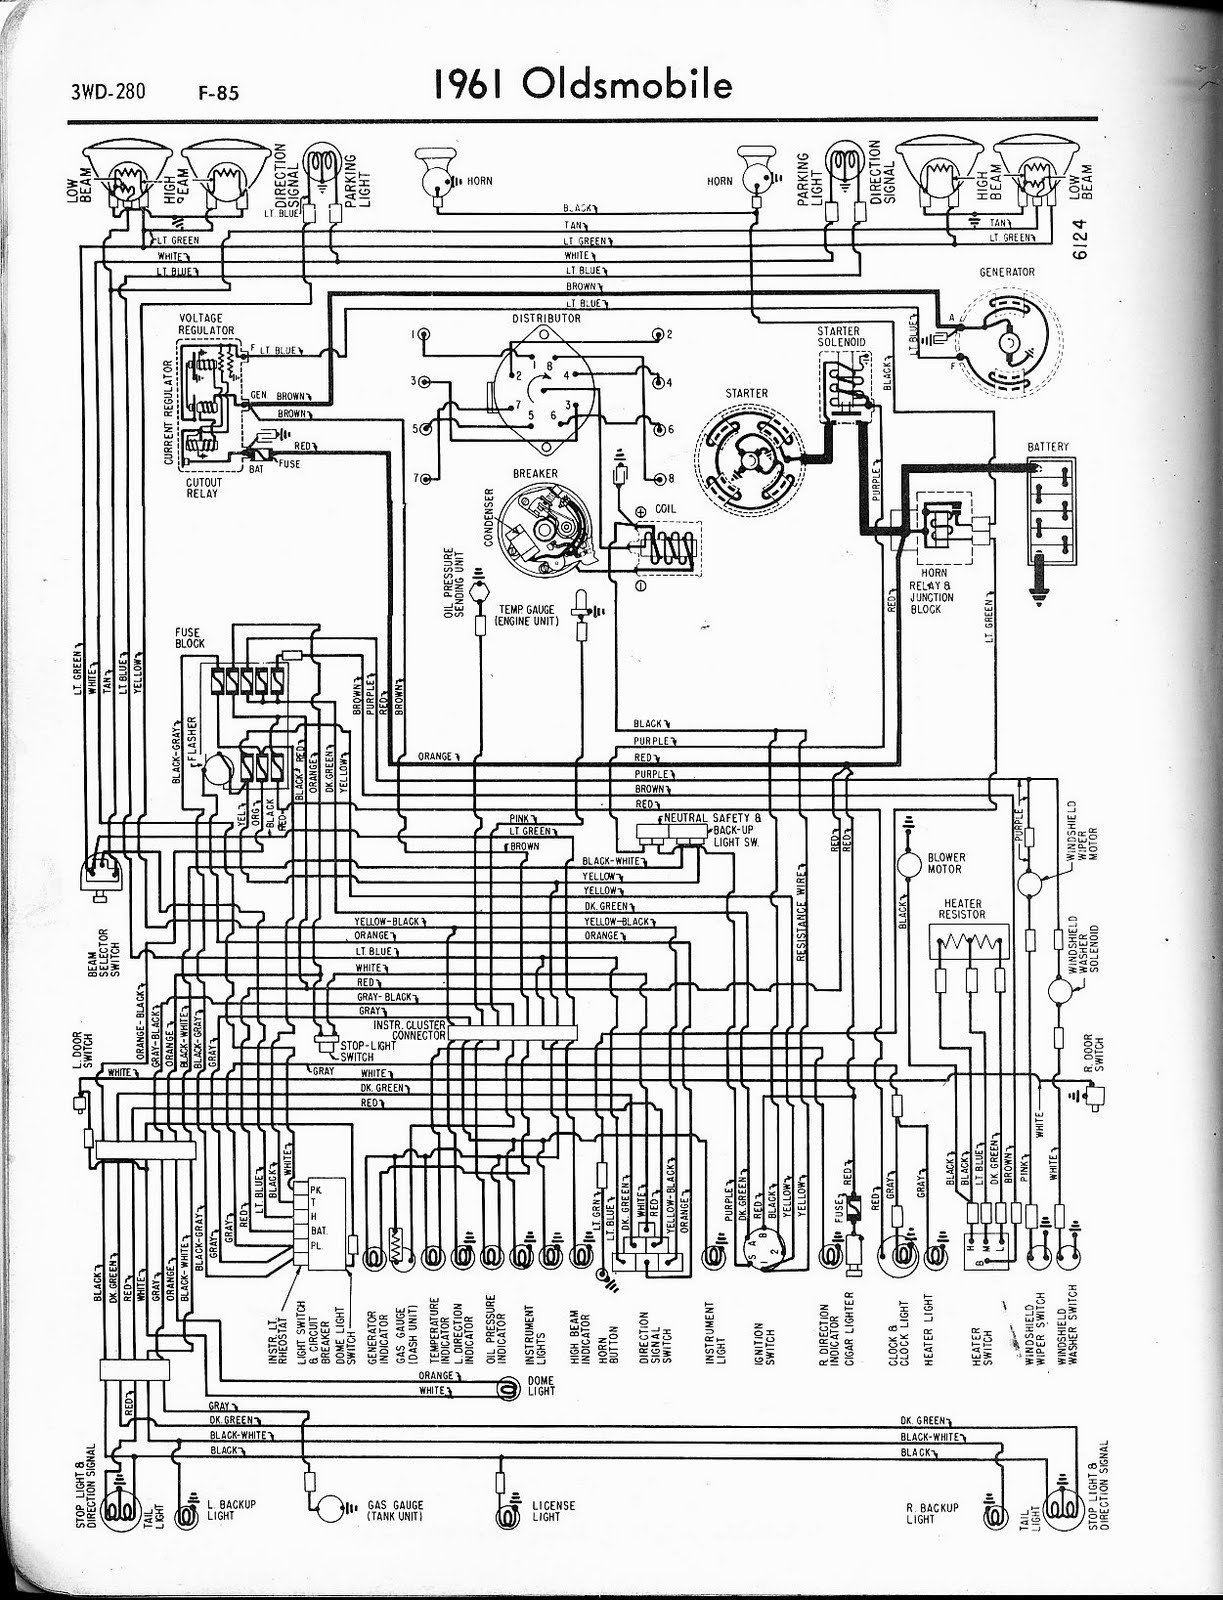 car stereo wiring diagram 1980 camaro